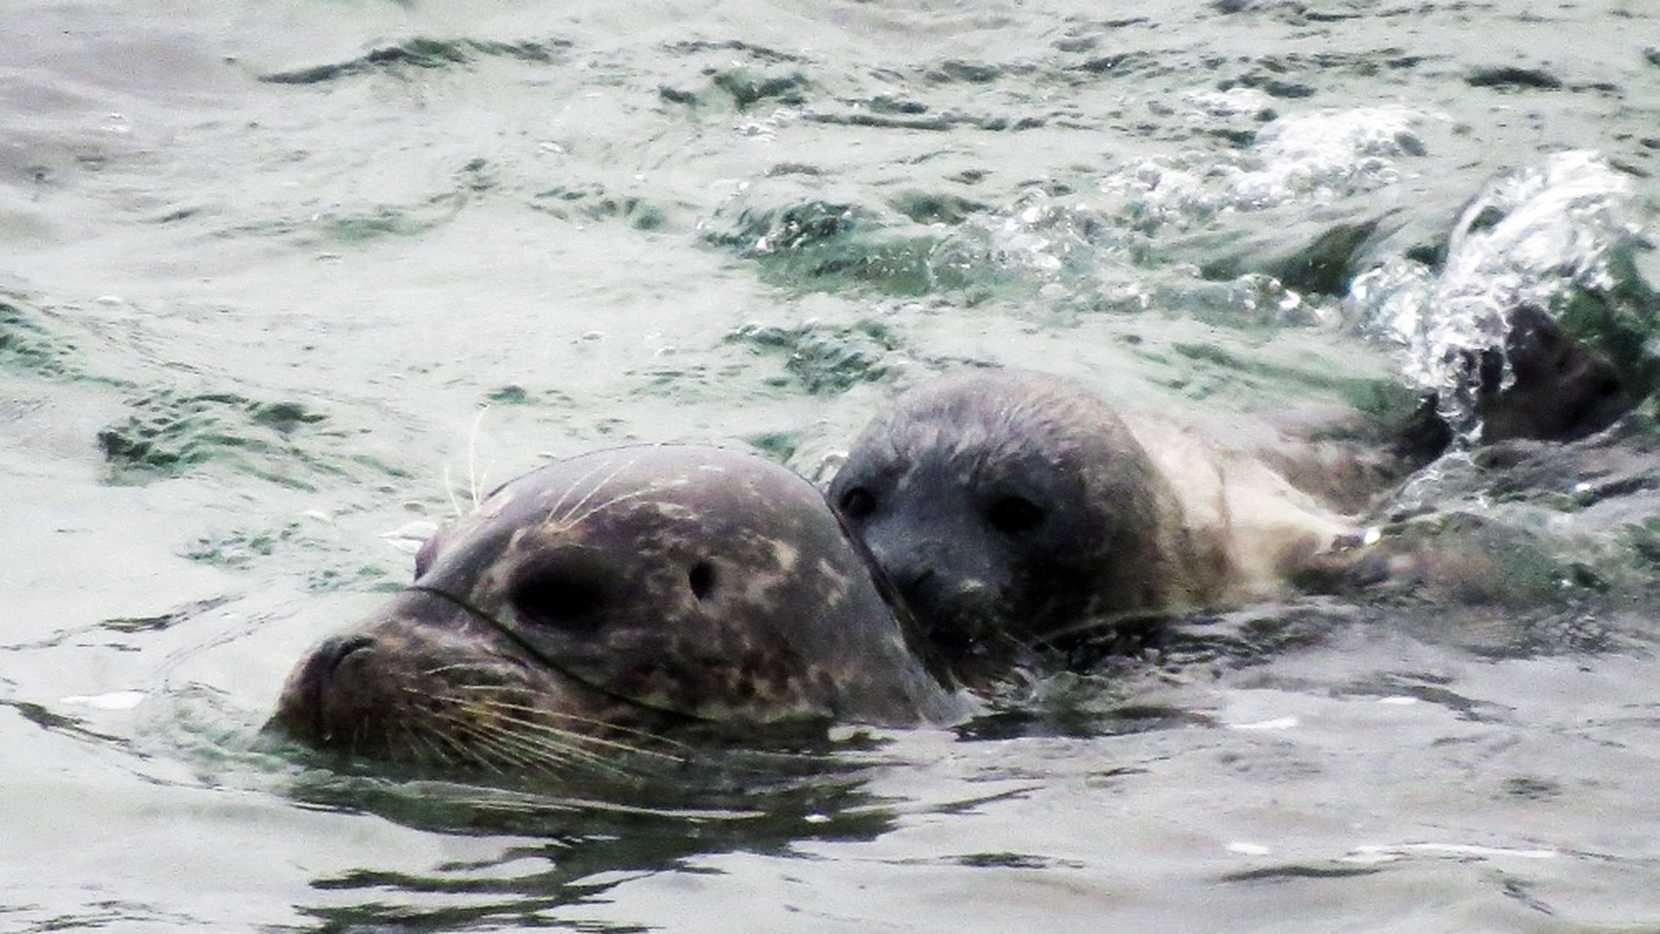 seal harbor buddhist single women A chubby, happy harbor seal has been spotted in the rancocas creek, apparently lured by herring, says a wildlife expert who assists stranded and displaced marine animals.